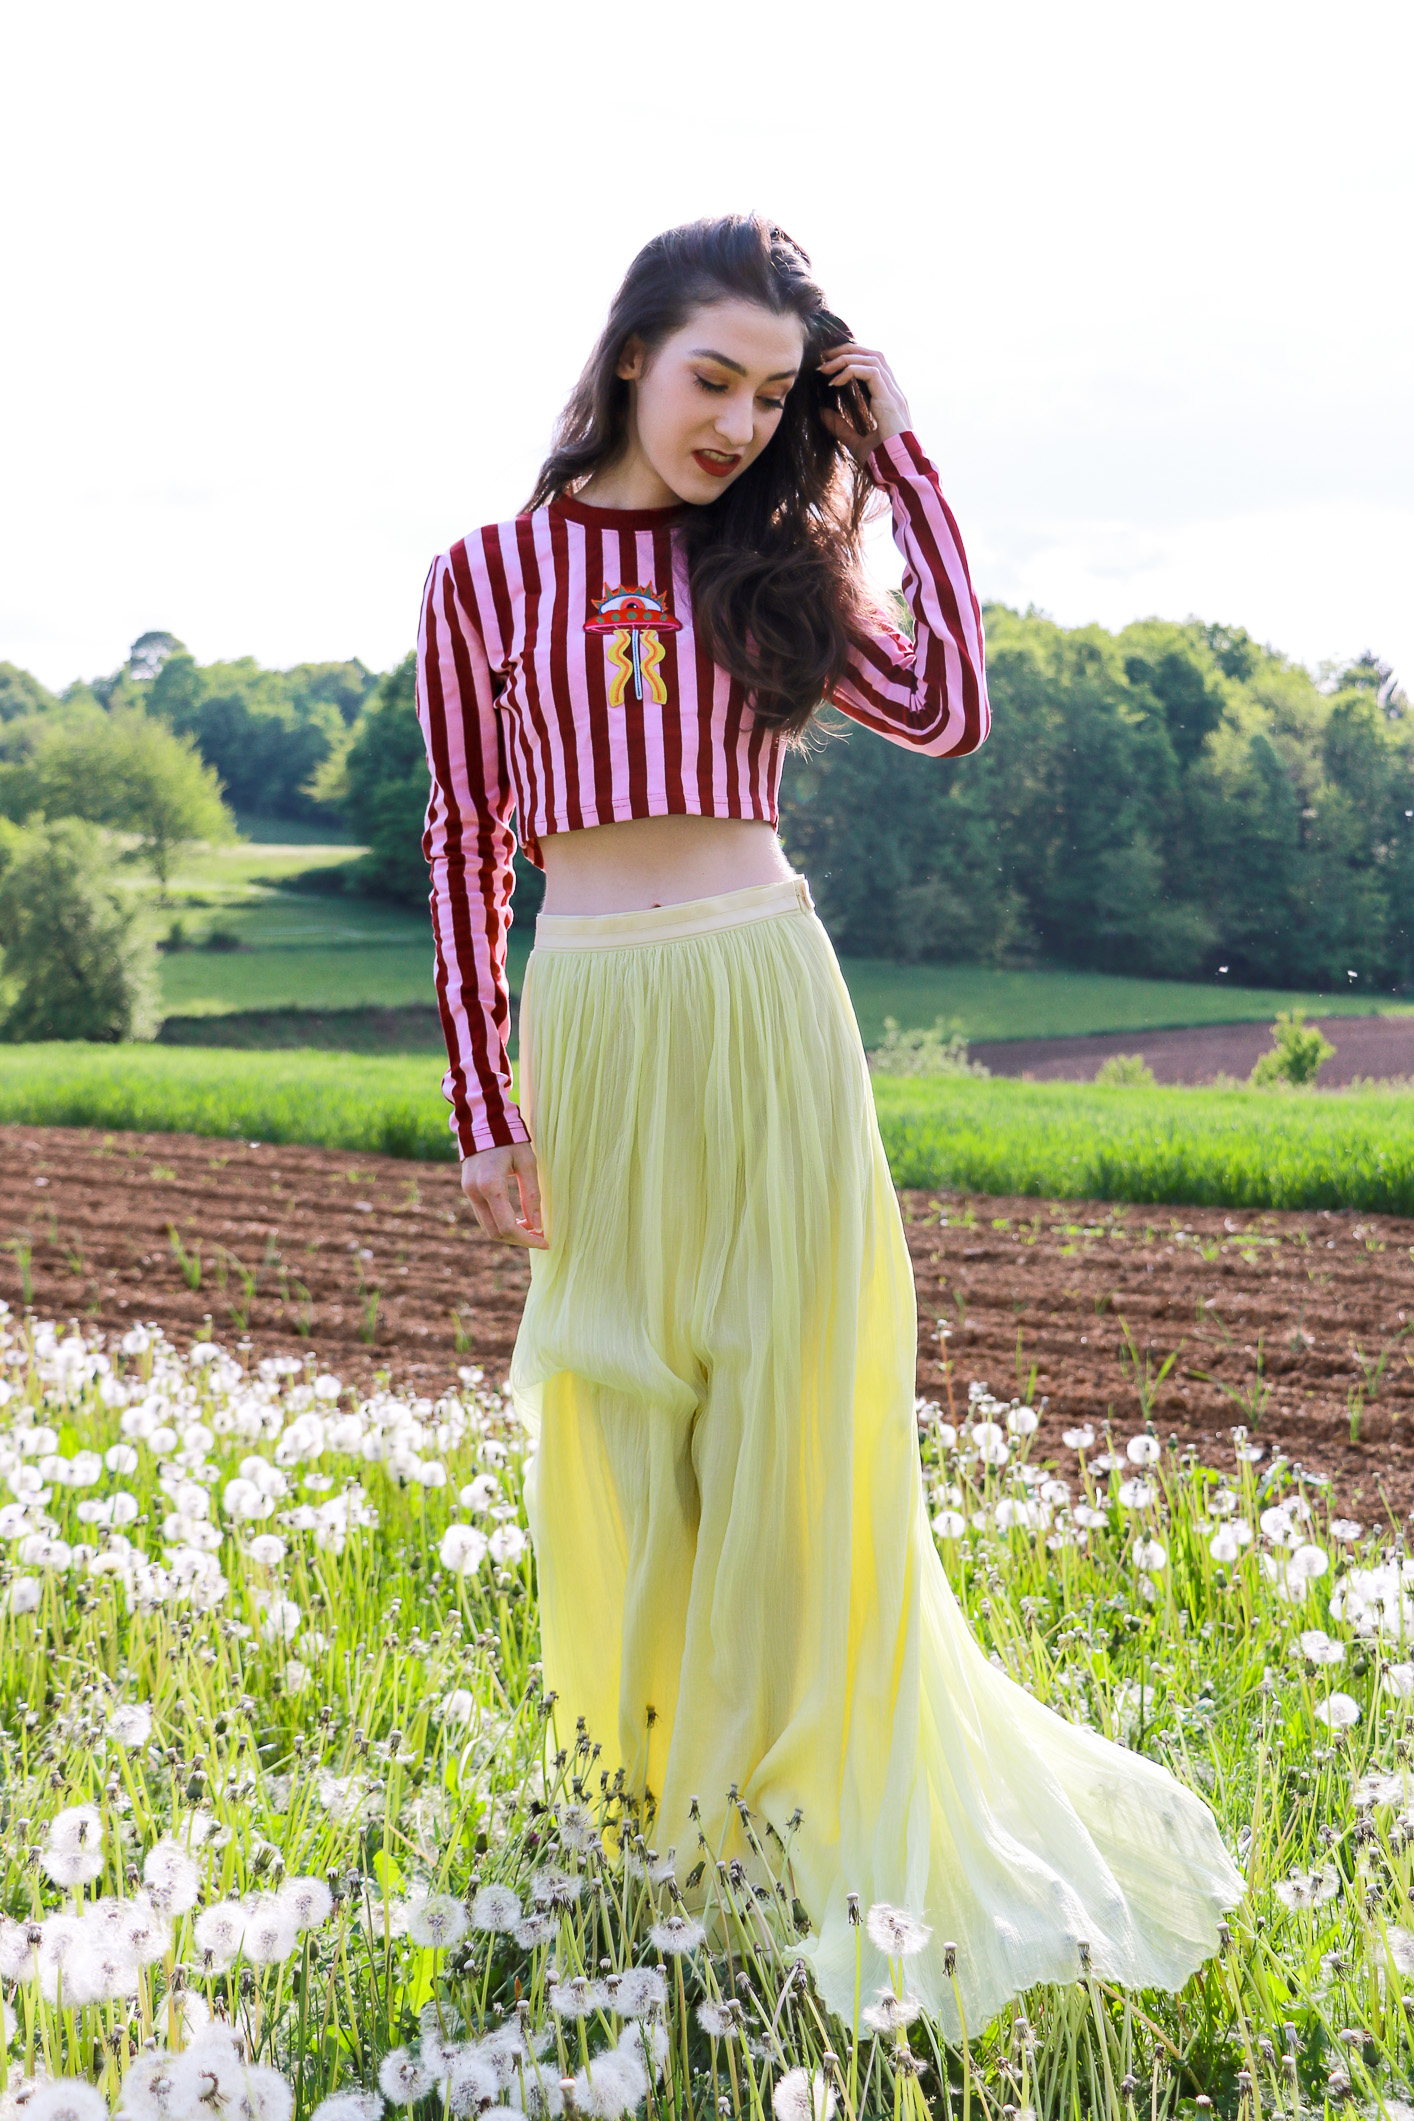 Fashion blogger Veronika Lipar of Brunette From Wall Street sharing how to style yellow outfit this season